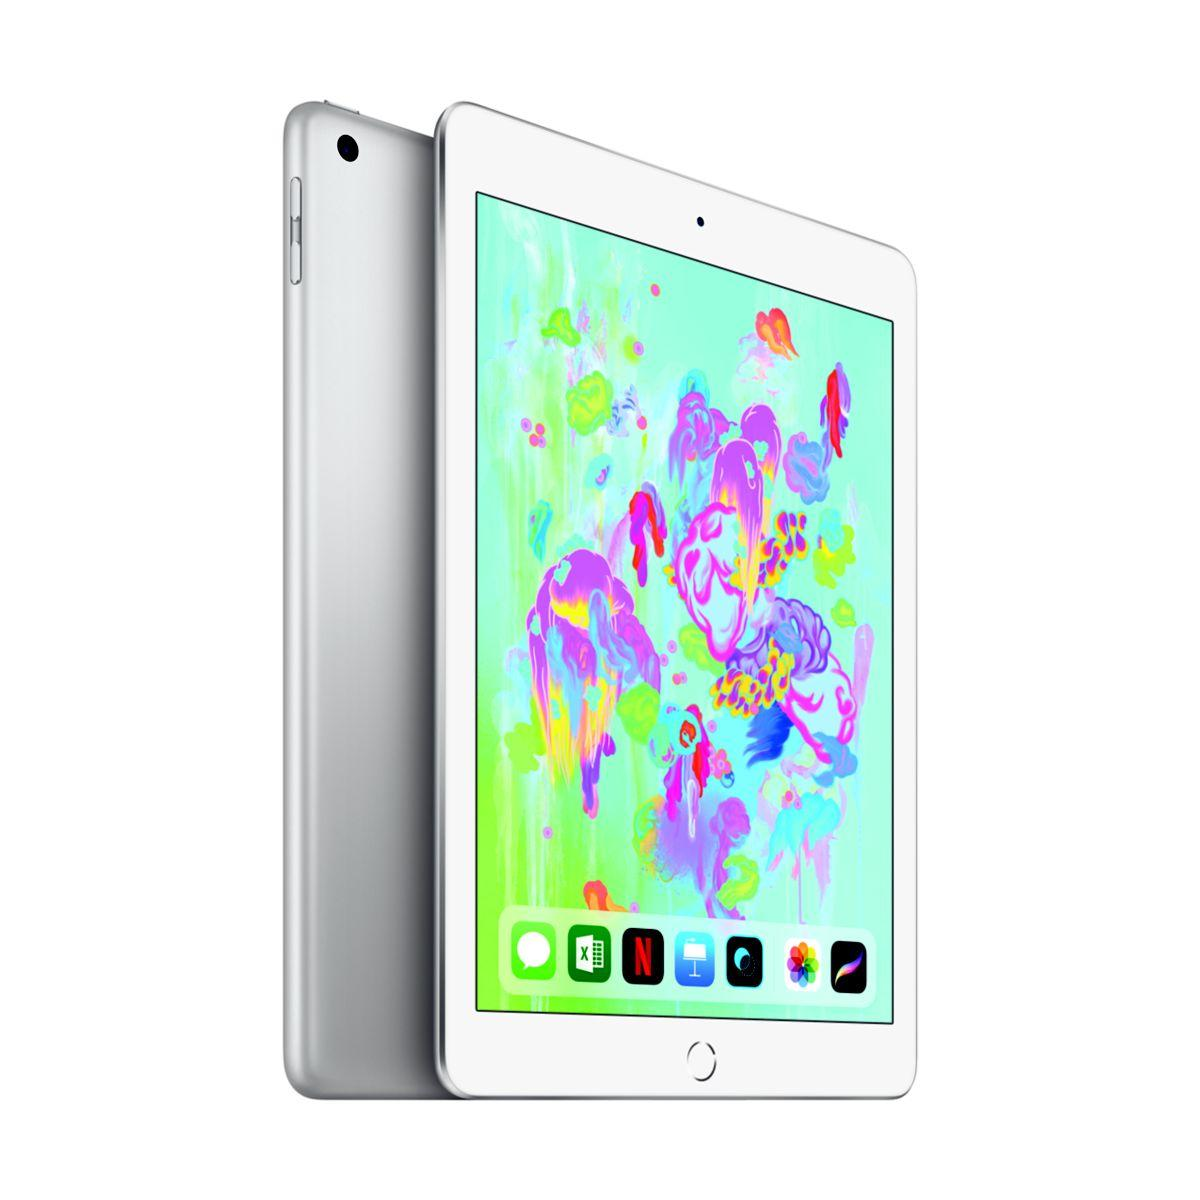 Tablette apple ipad new 32go cell argent (photo)